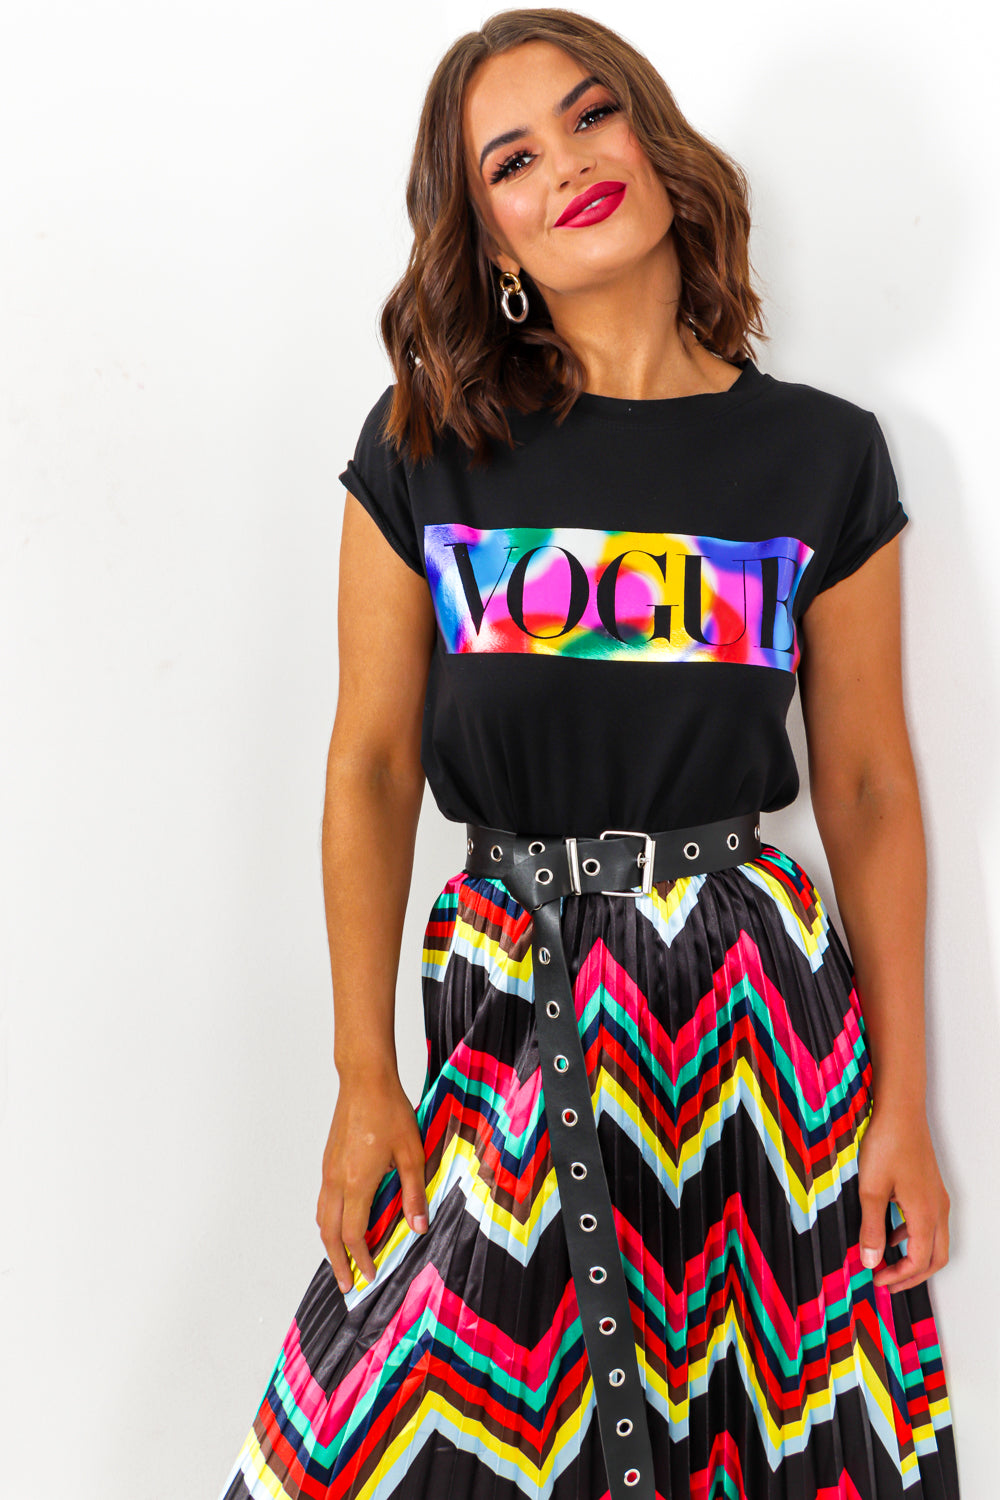 Vogue Slogan T-shirt Rainbow Black- DLSB Womens Fashion